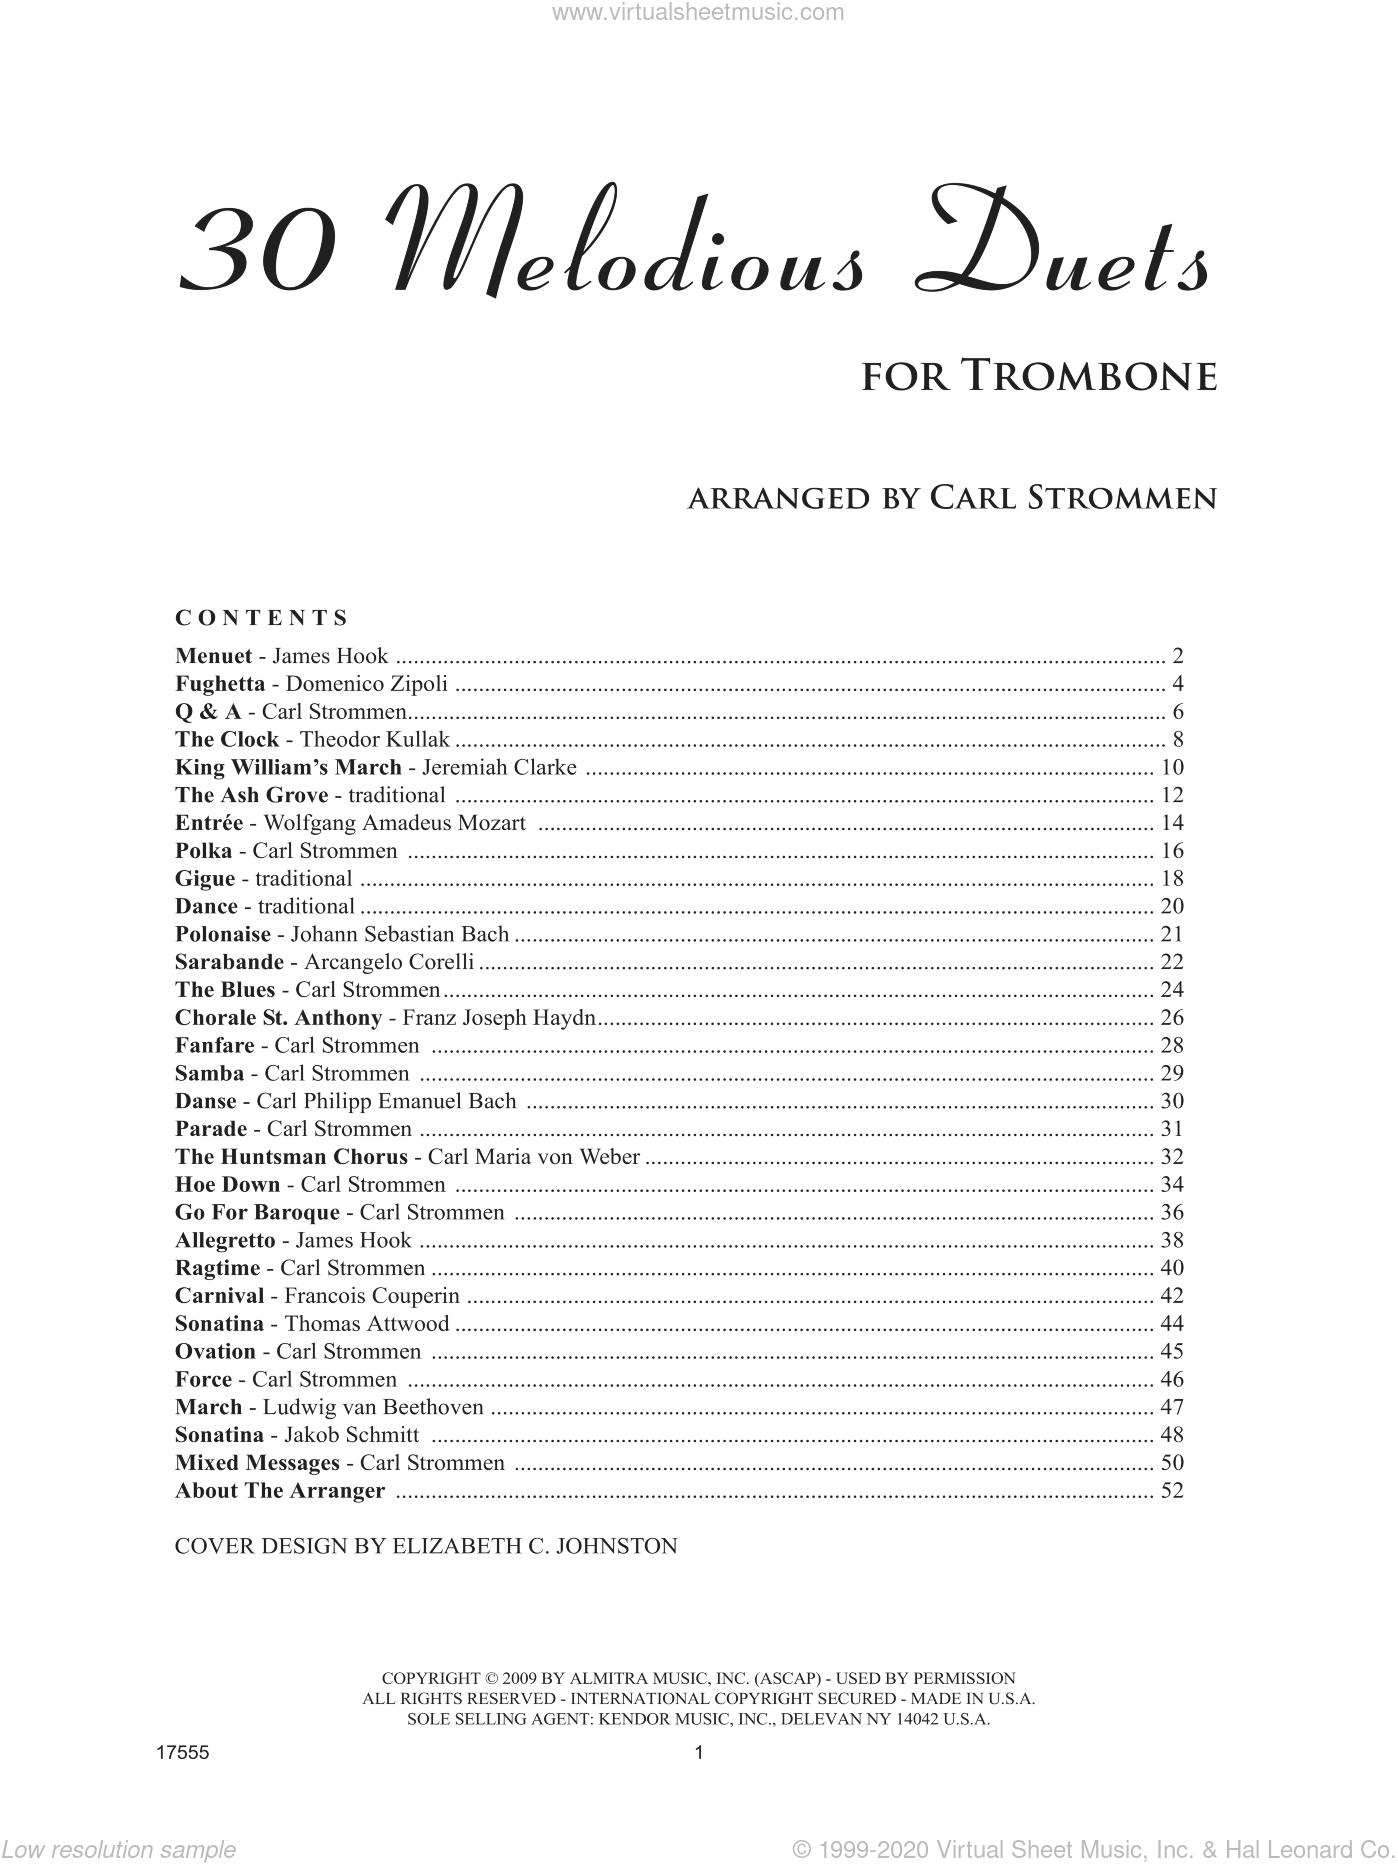 30 Melodious Duets sheet music for two trombones by Carl Strommen